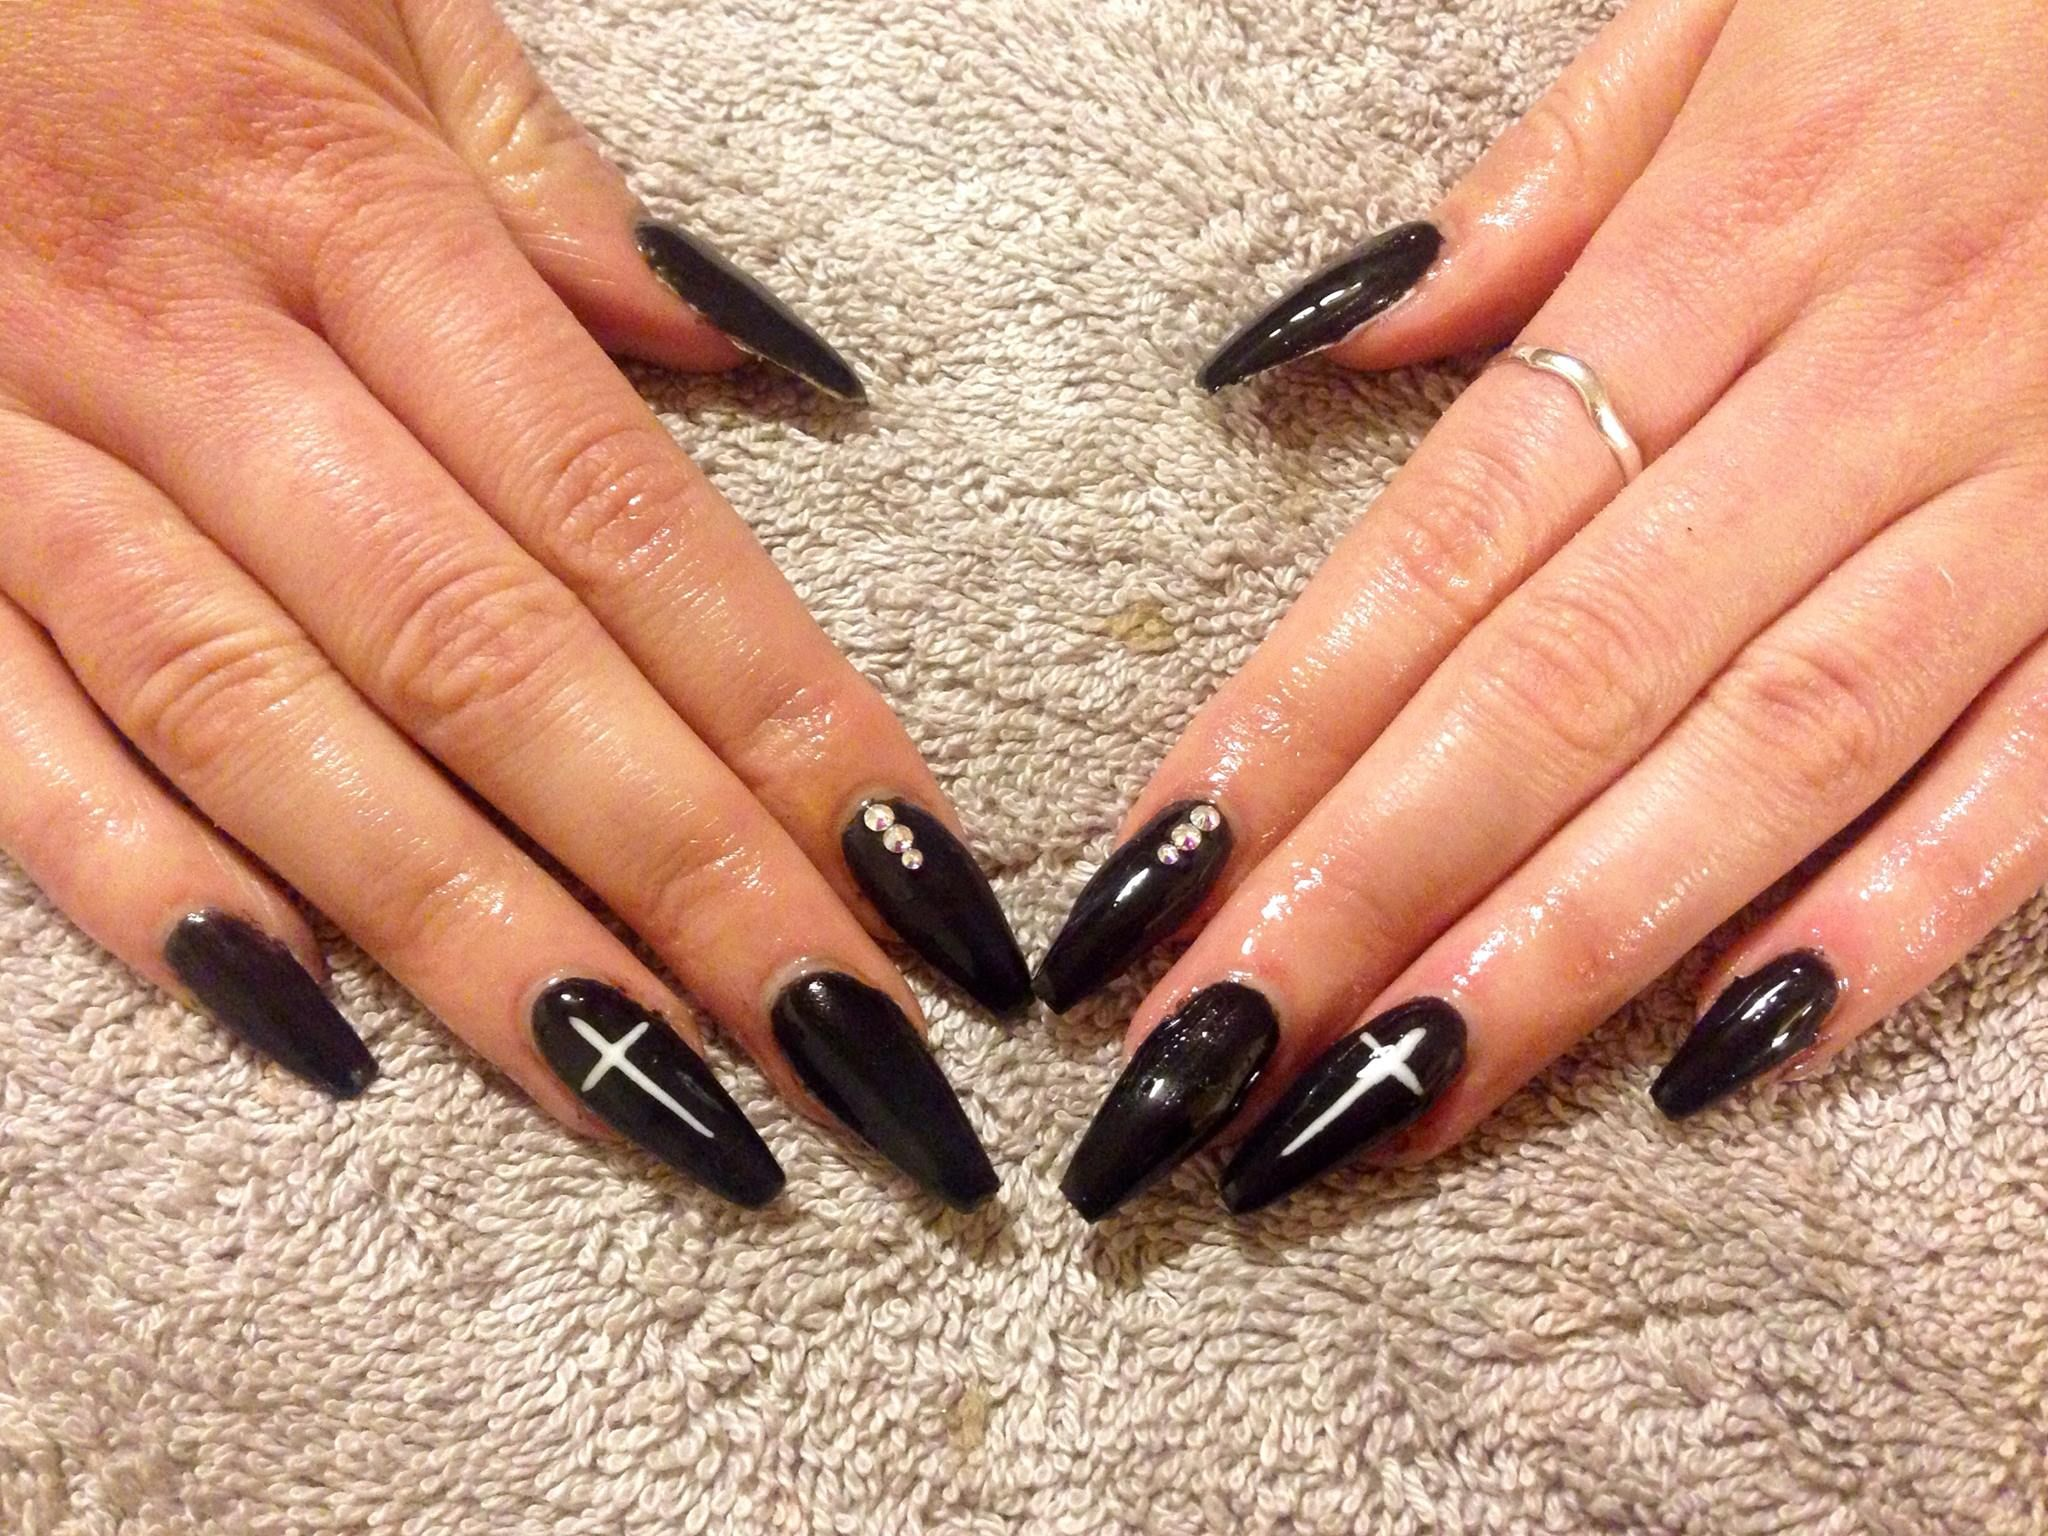 My First Set Of Gel Nails Black Coffin Shape With White